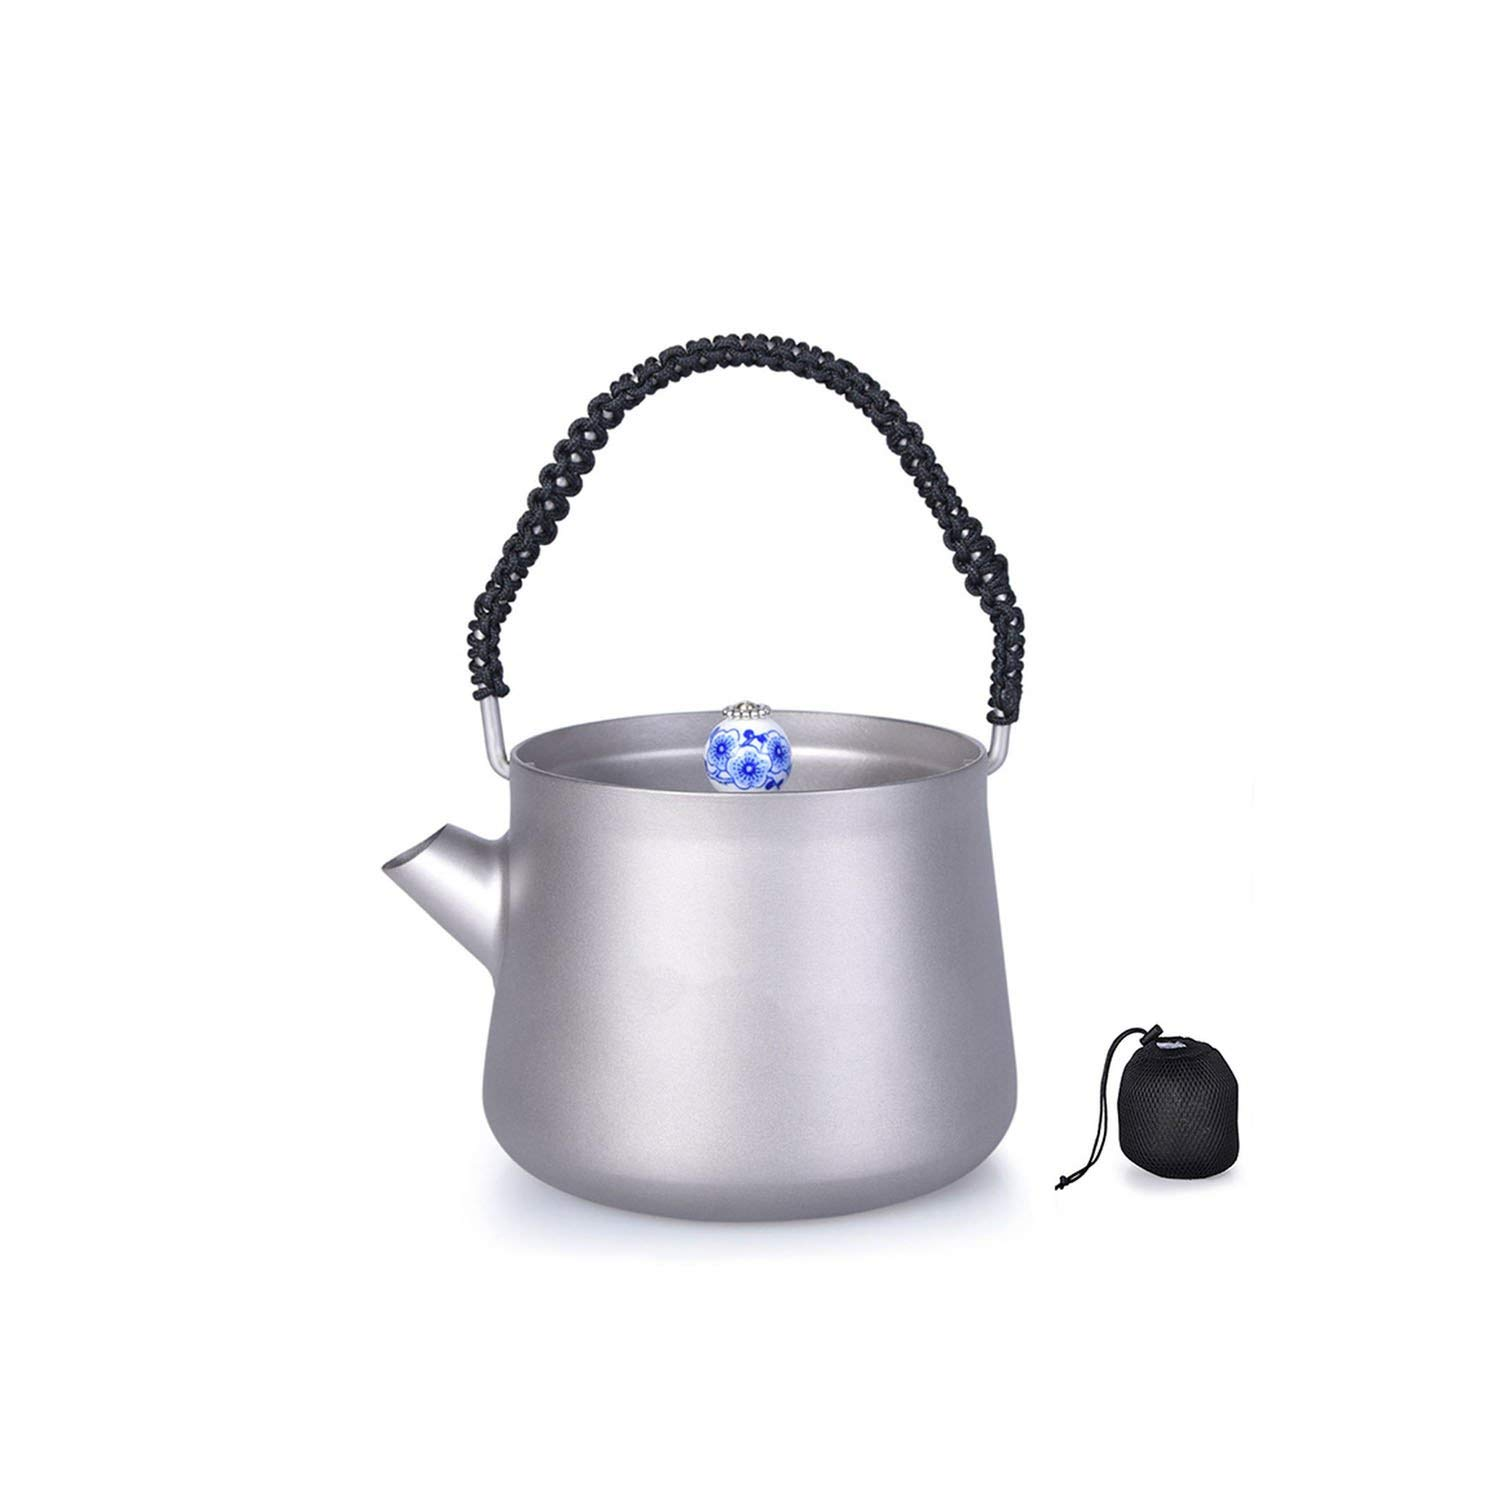 Coffee-Percolators Camping 230Ml Titanium Mini Kettle With Lid Handle Filter Water Coffee Tea Maker,Kettle